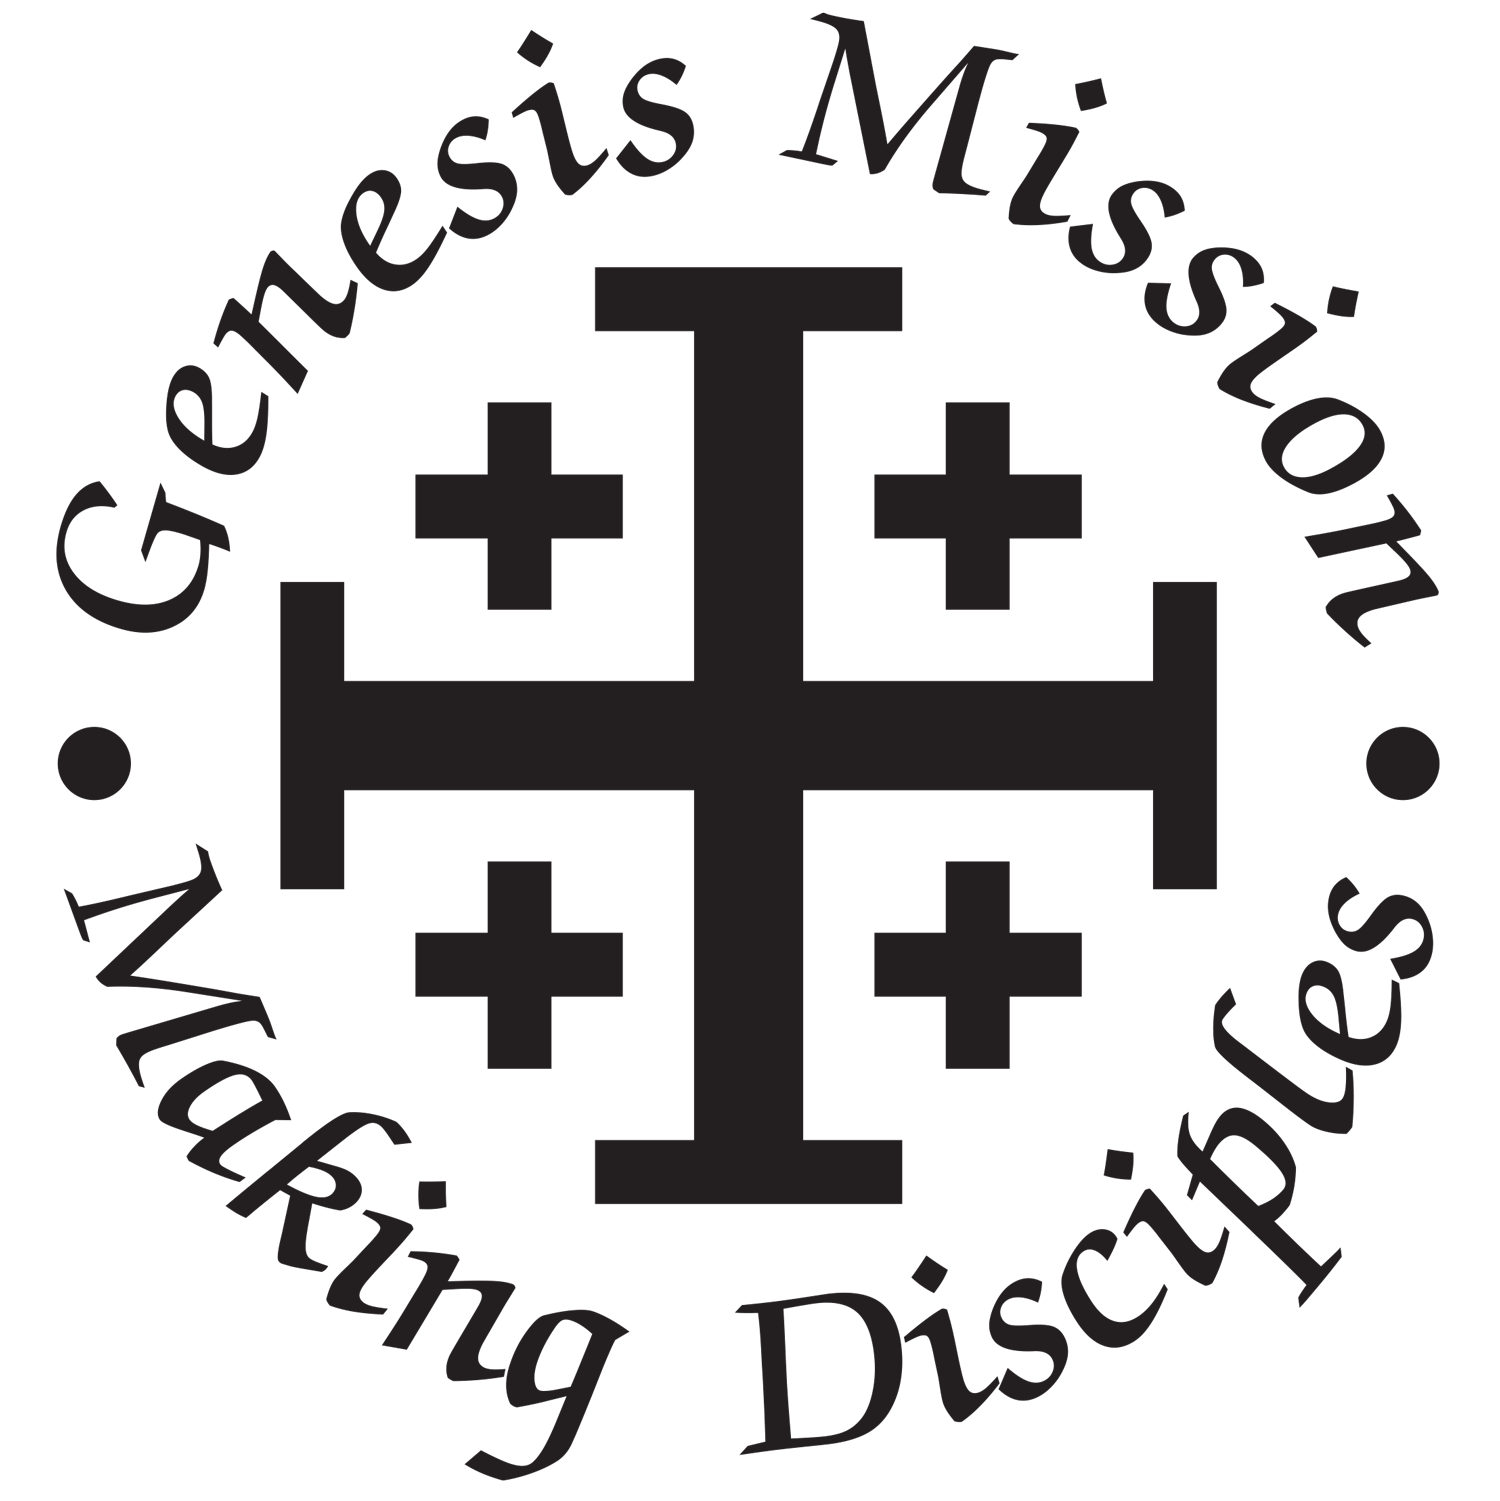 The Genesis Mission